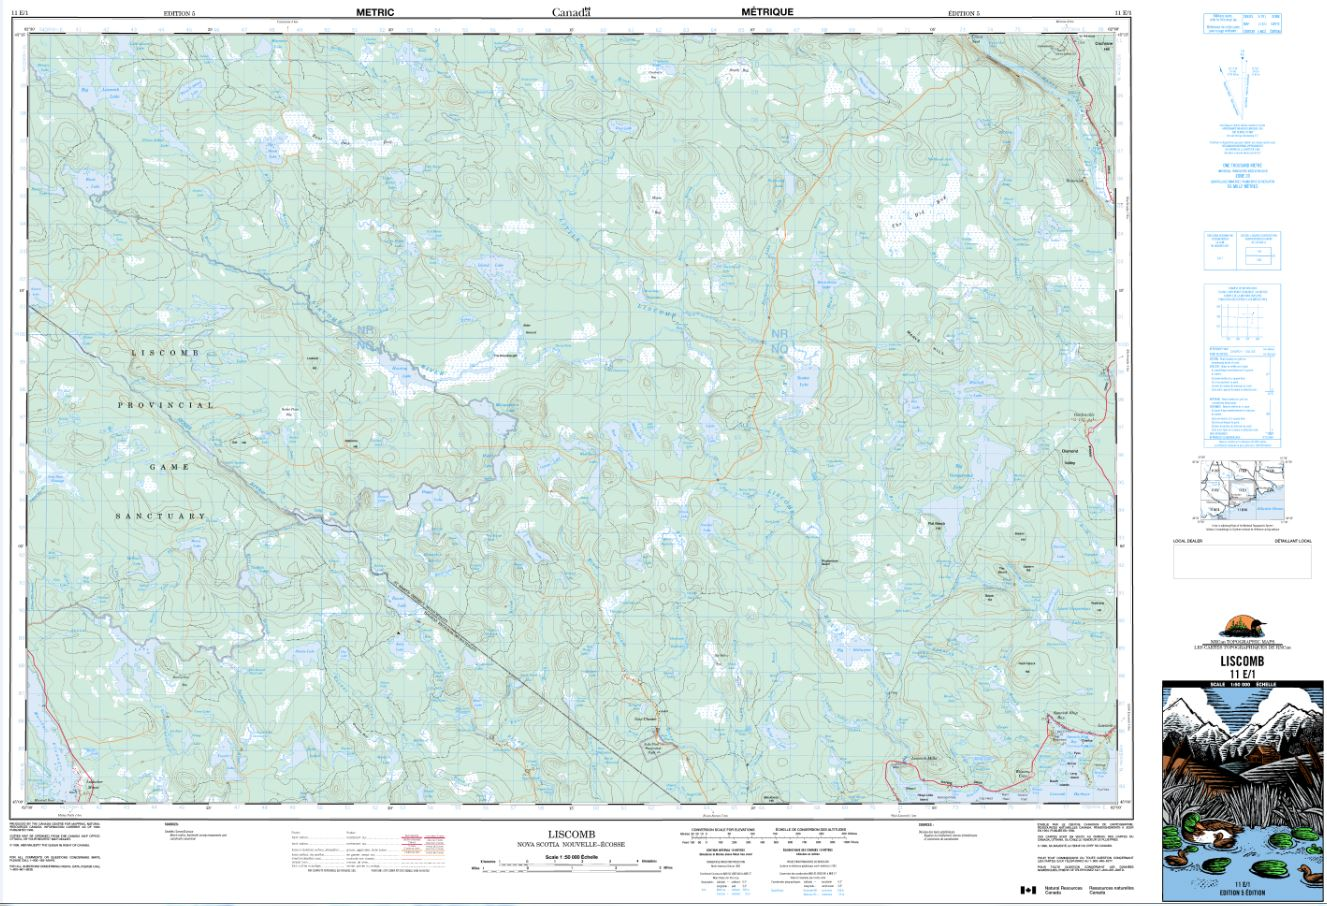 11E/01 Liscomb Topographic Map Nova Scotia